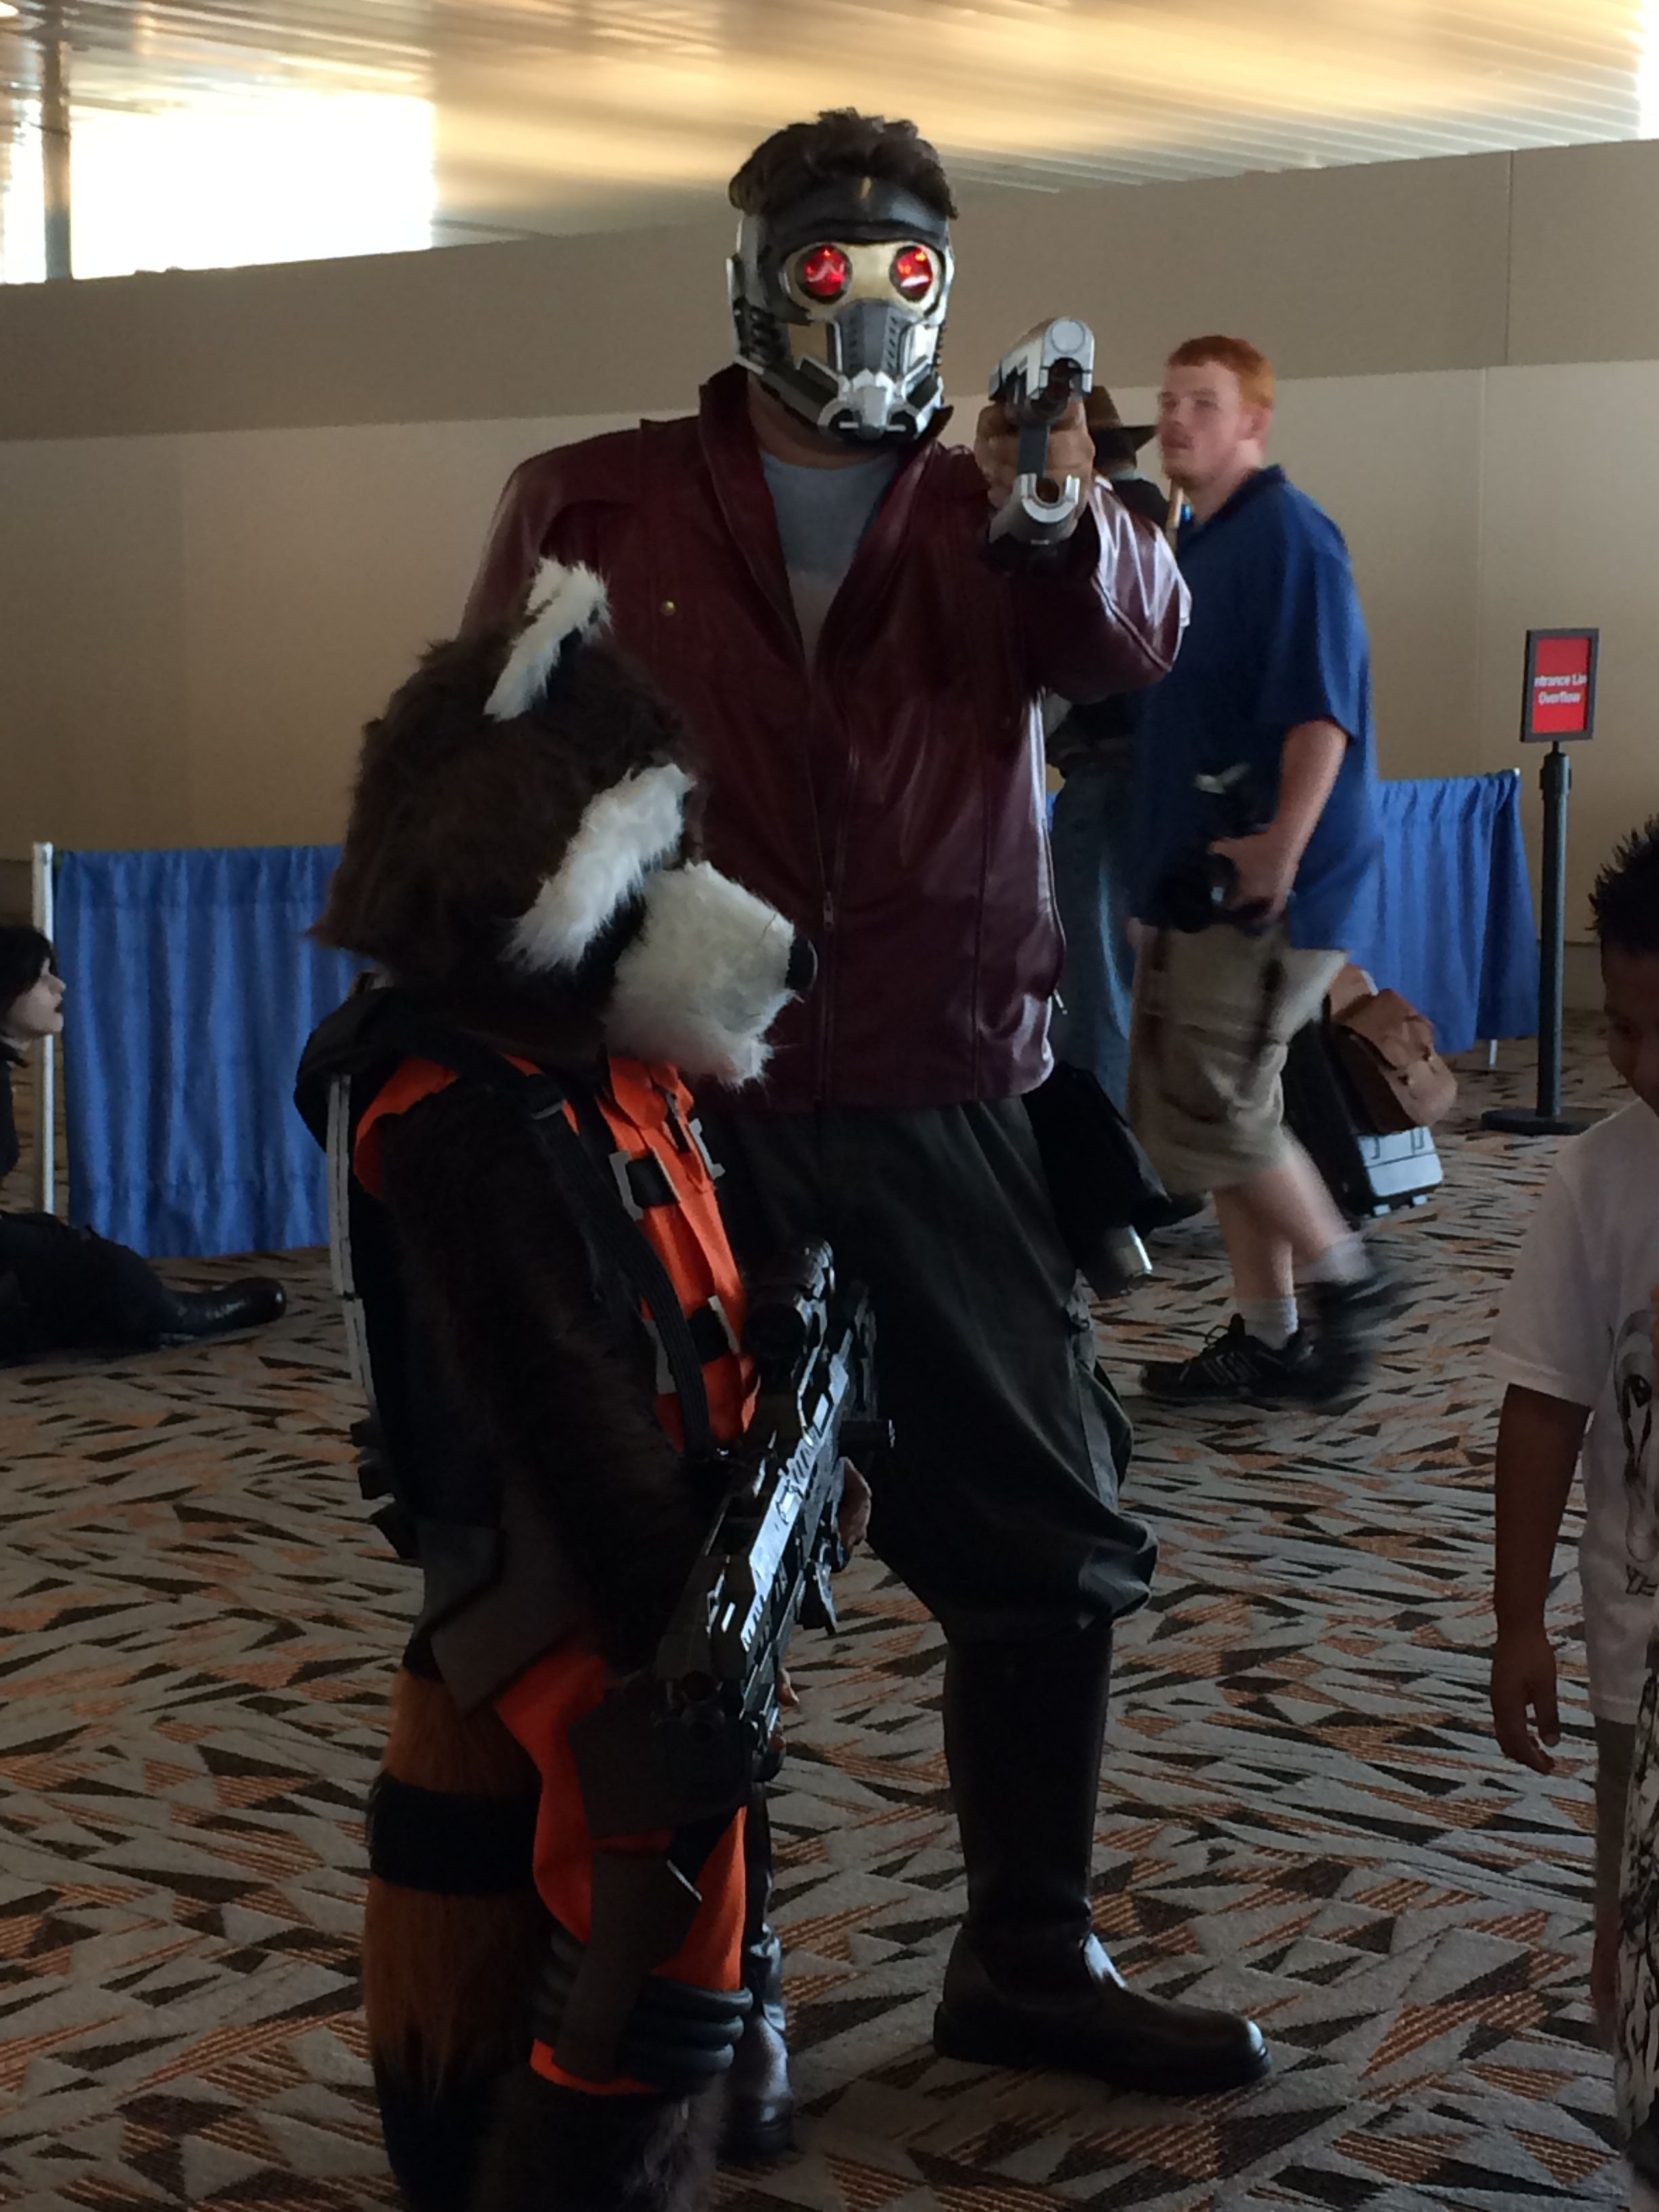 Guardians of the Galaxy costumes. Baltimore Comic Con 2014